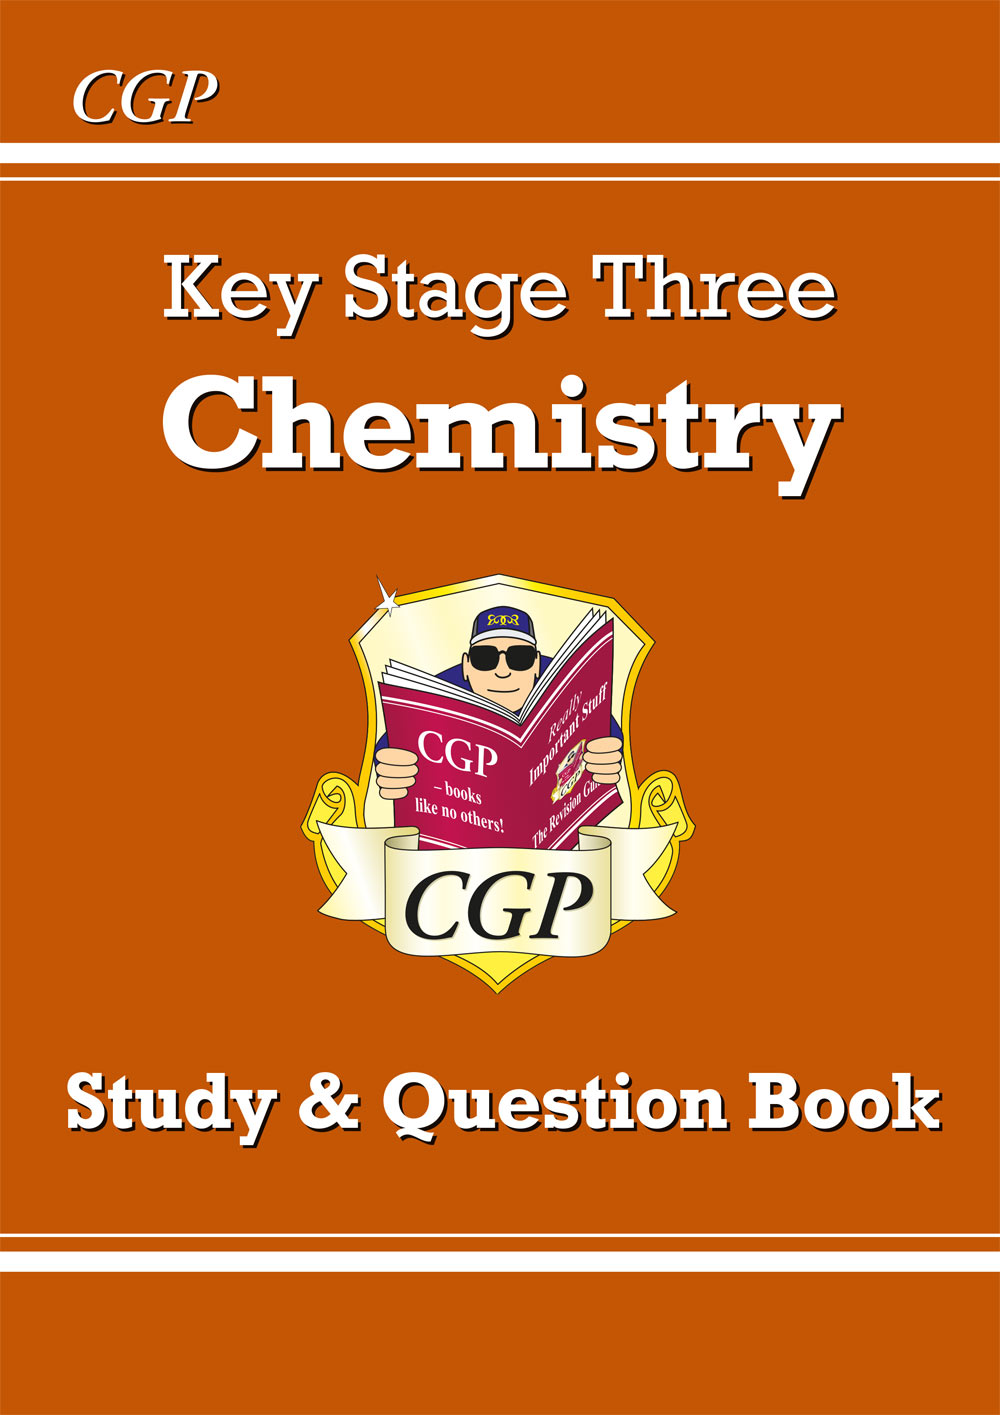 CHQ32 - KS3 Chemistry Study & Question Book - Higher